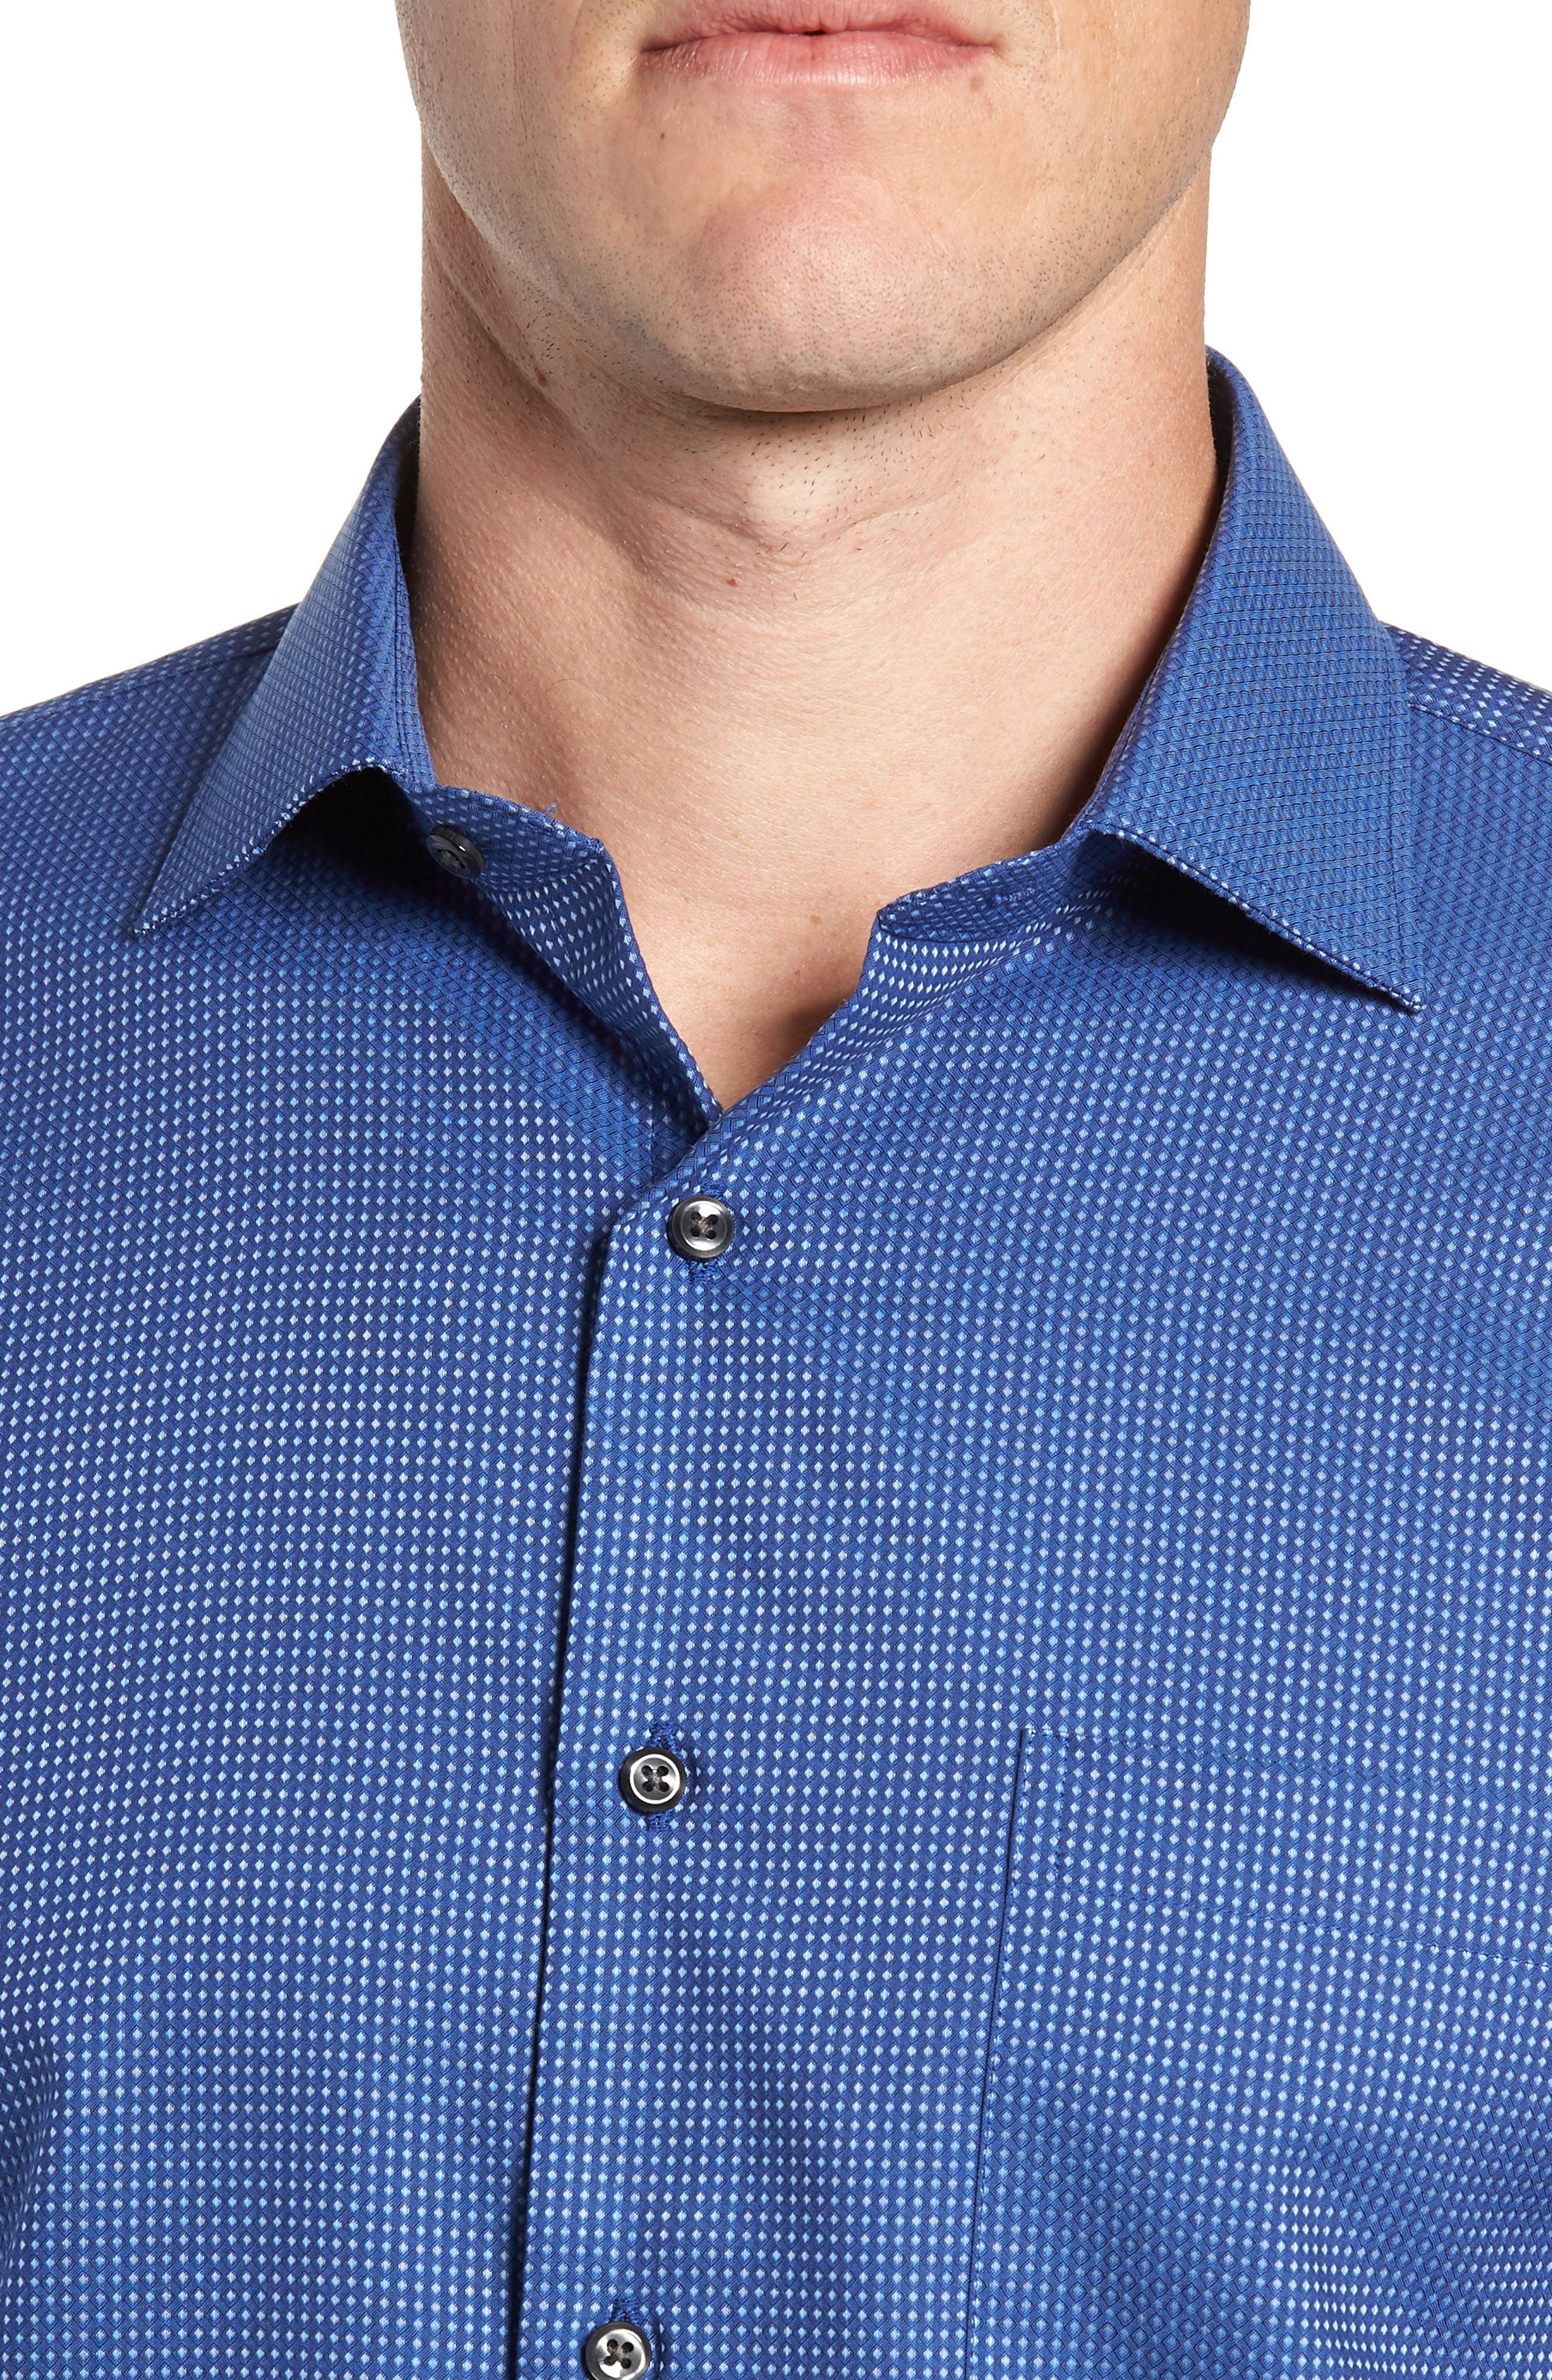 Trim Fit Non-Iron Dot Dress Shirt,                             Alternate thumbnail 2, color,                             420